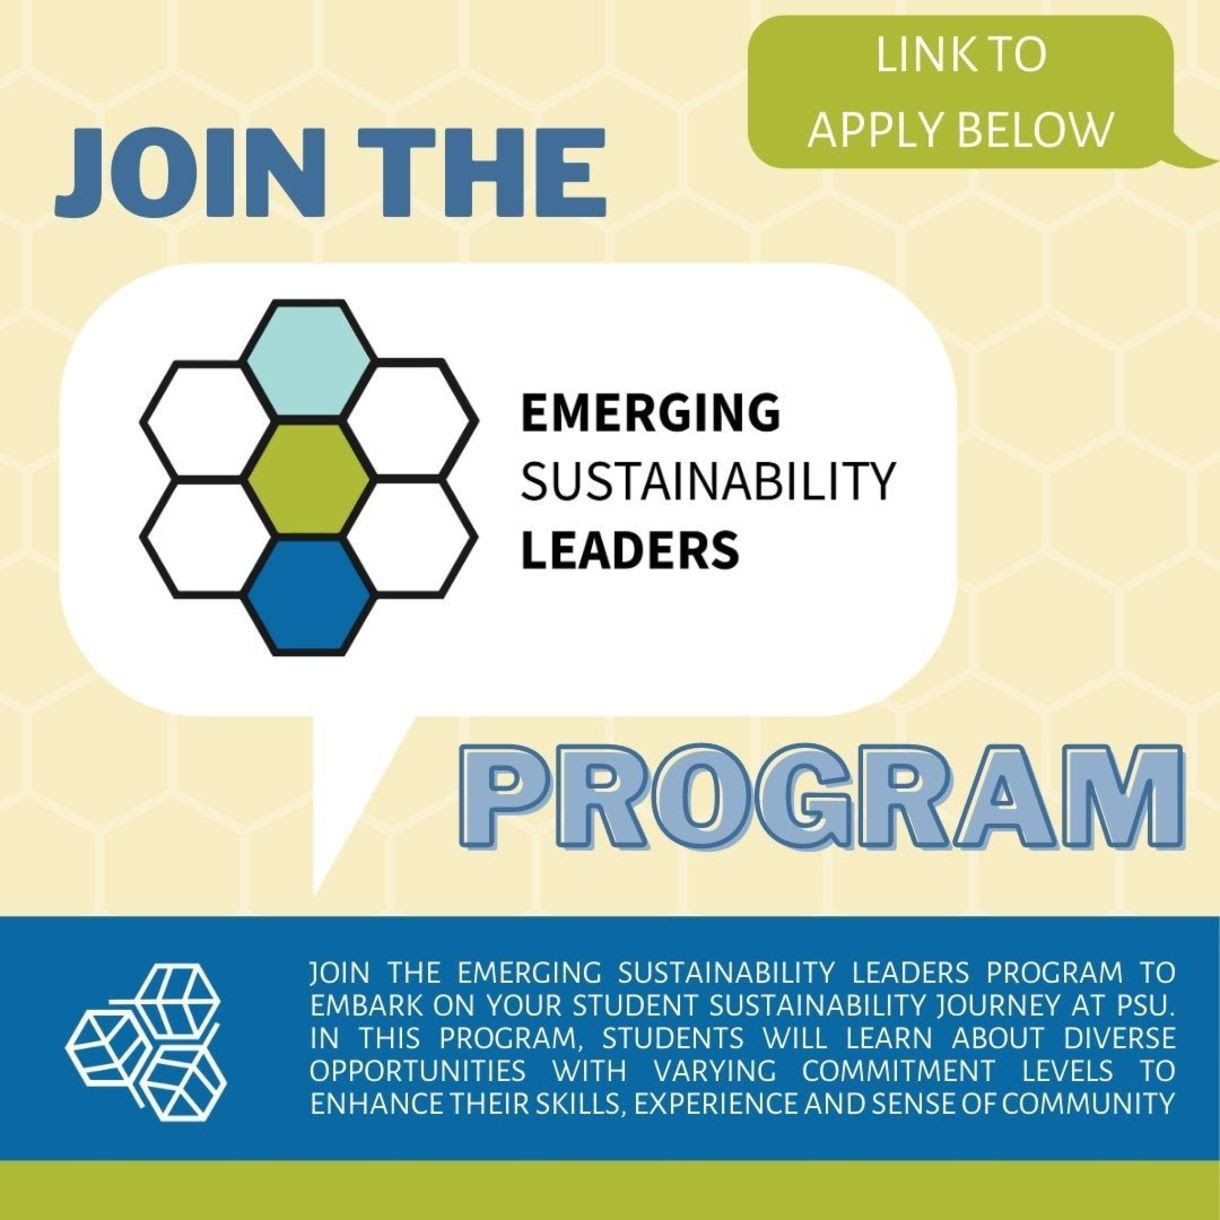 join the emerging sustainability leaders program